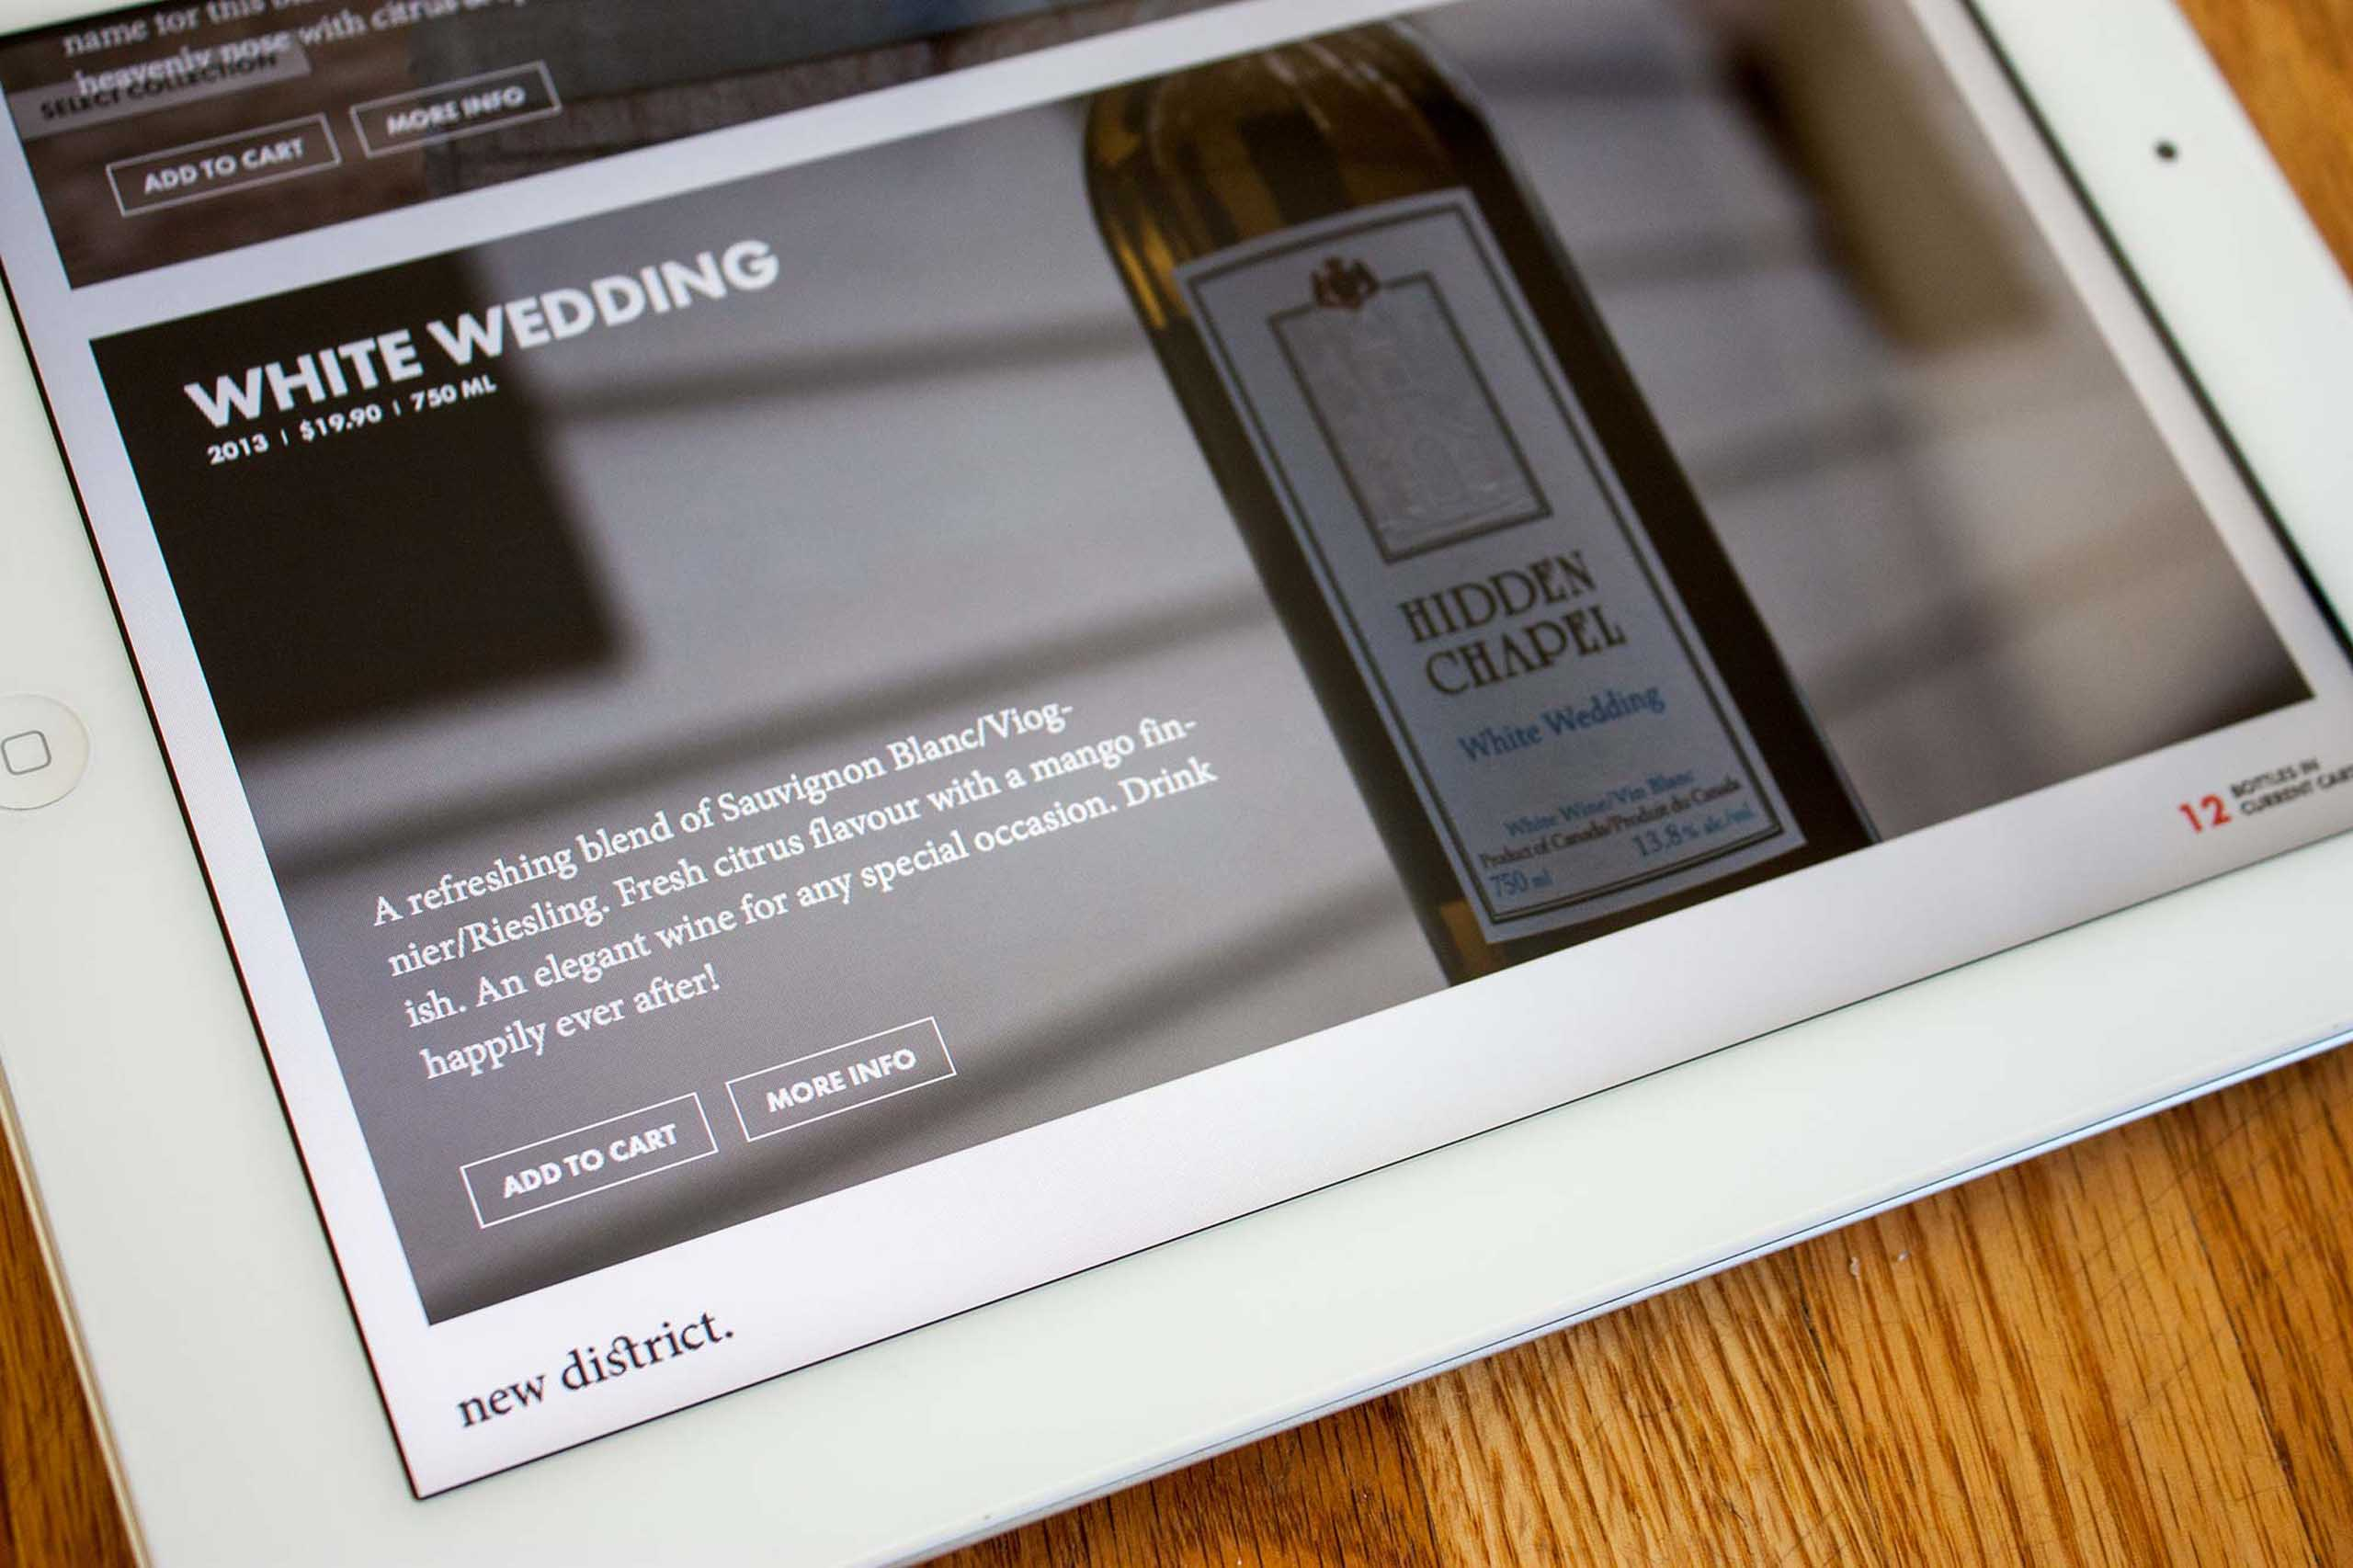 Details product card for a white wedding hidden chapel wine with an in depth description and add to card plus more info buttons — by Dima.